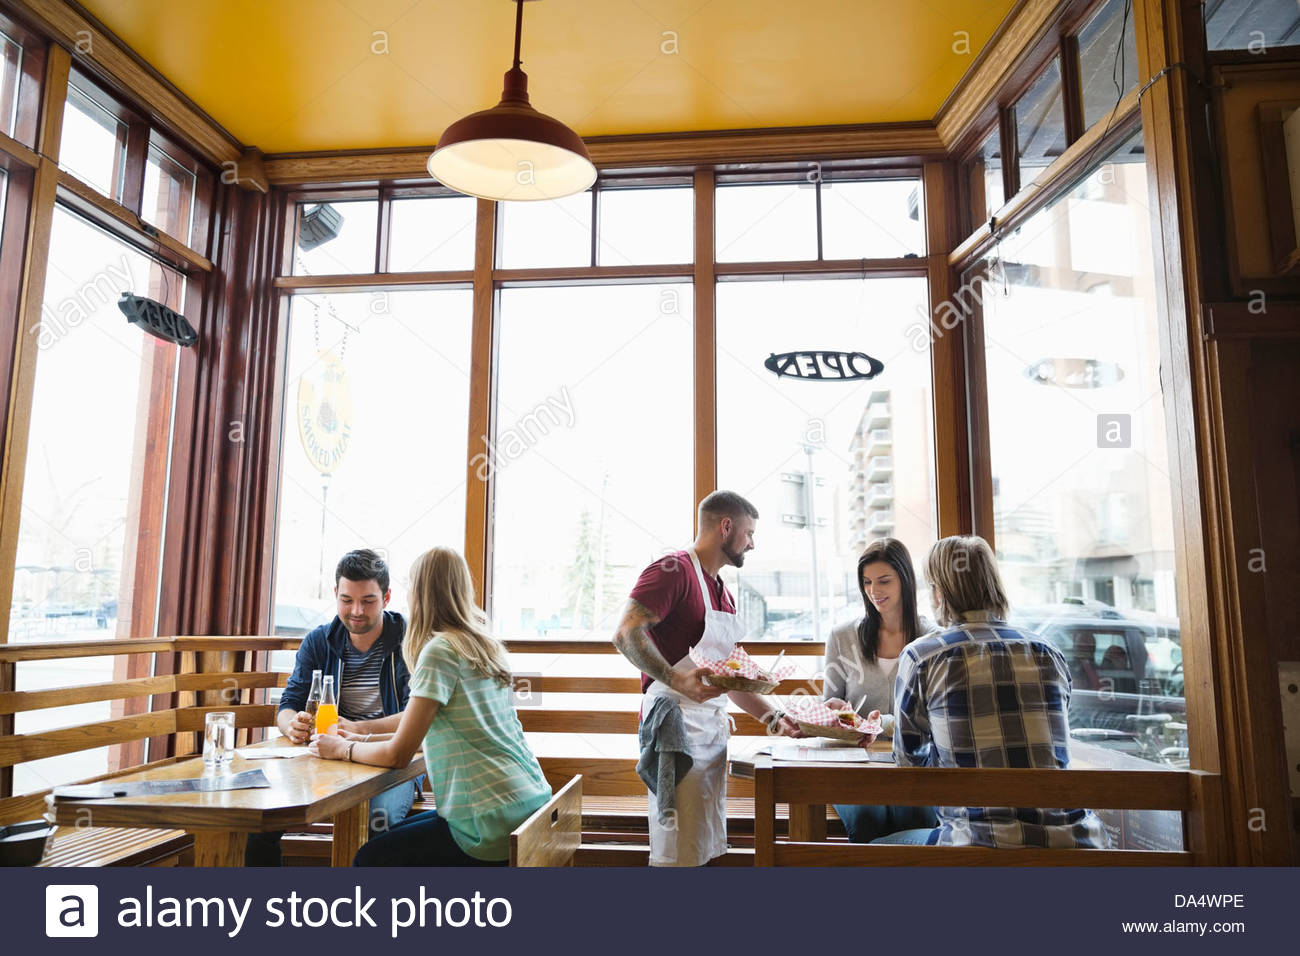 Male deli owner serving food to customers Stock Foto